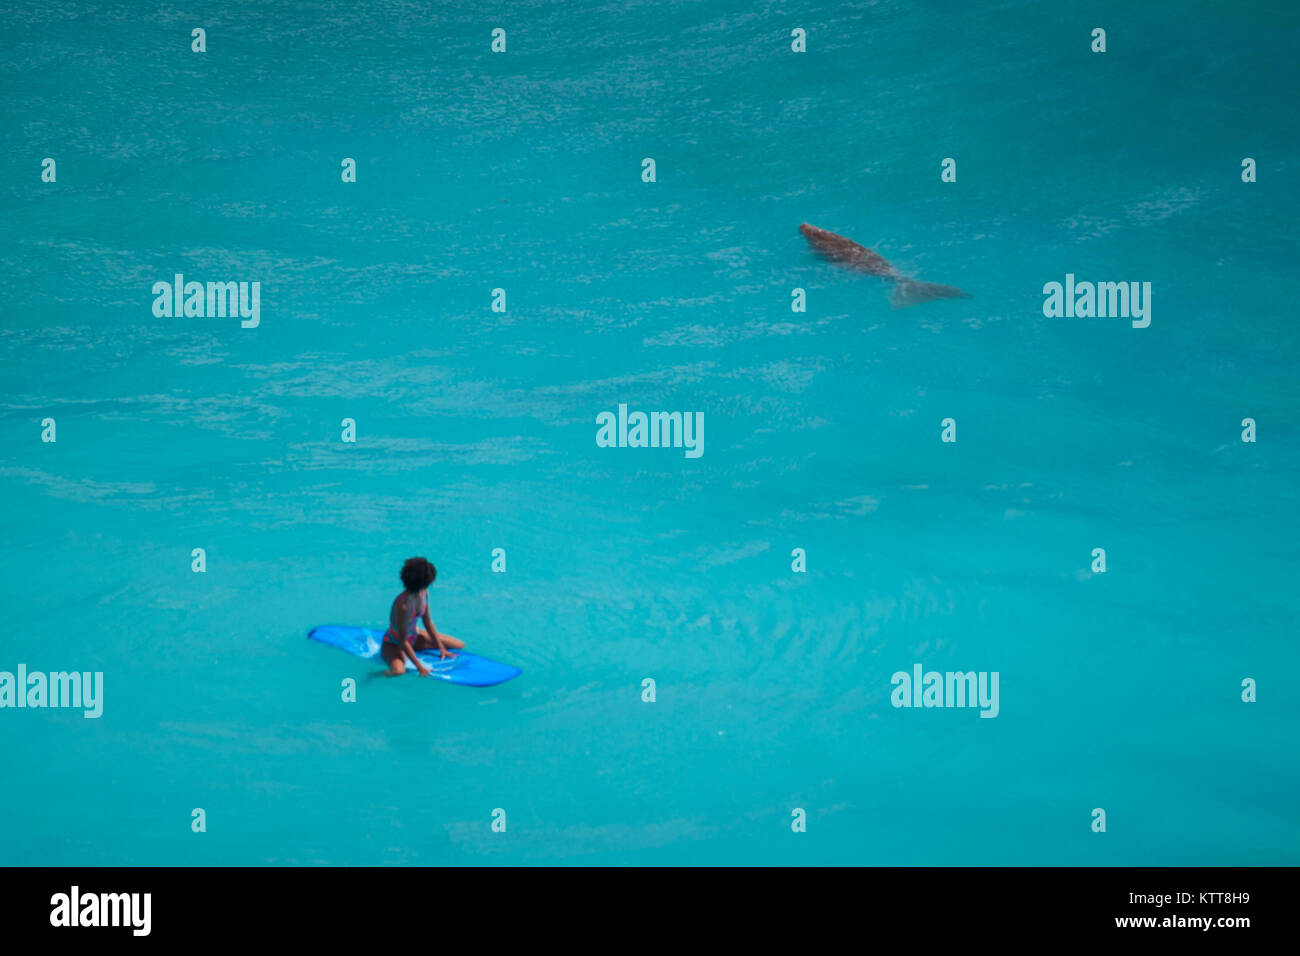 Surfer girl with afro hairstyle sitting on surfboard in crystal clear green water looking at sea cow at Uluwatu - Stock Image